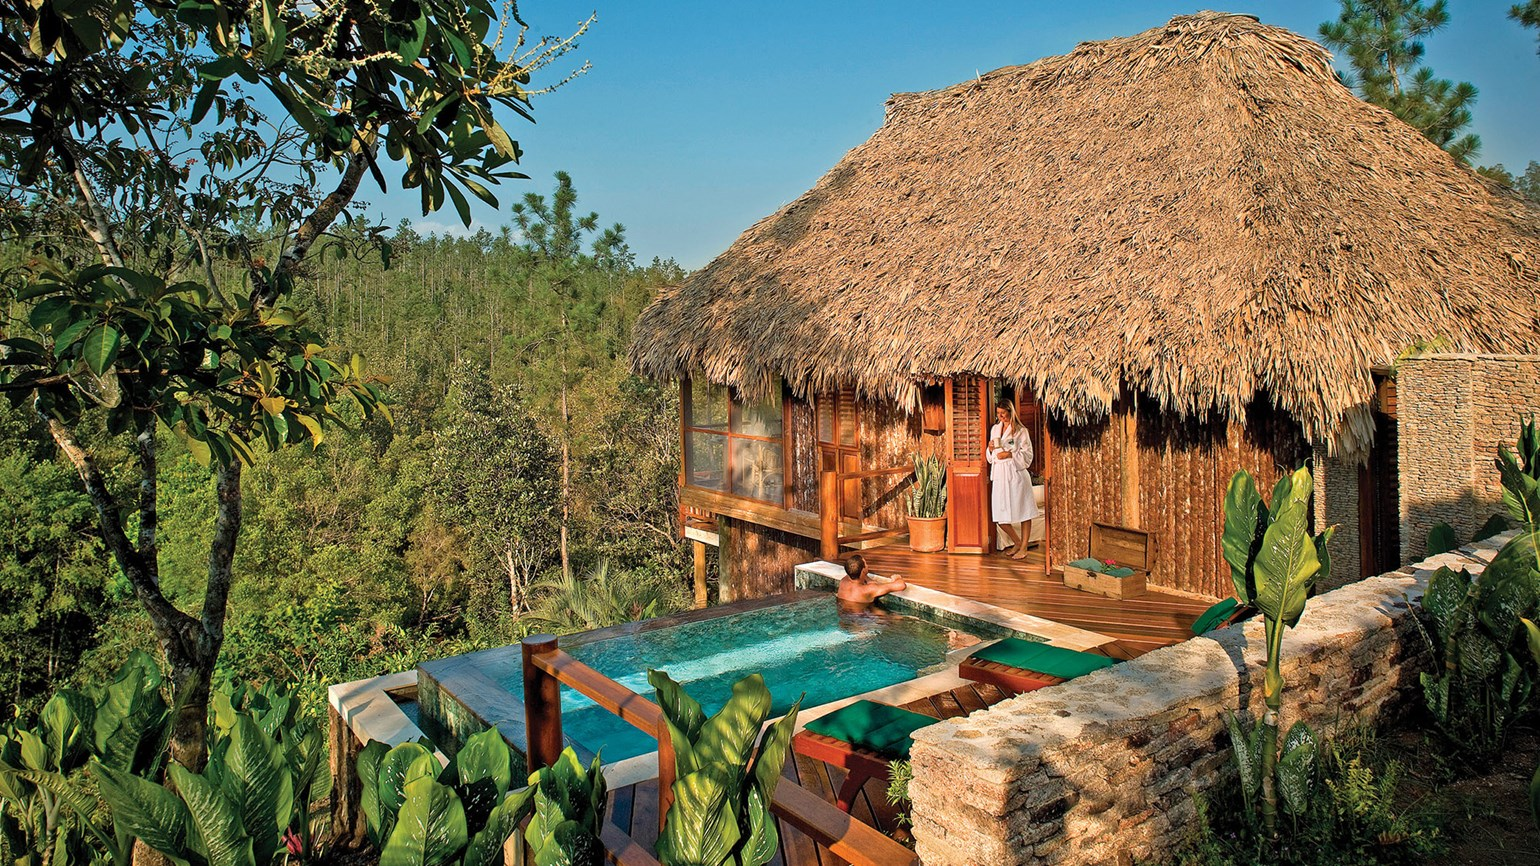 Surprising sylvan elegance: Belize's Blancaneaux Lodge